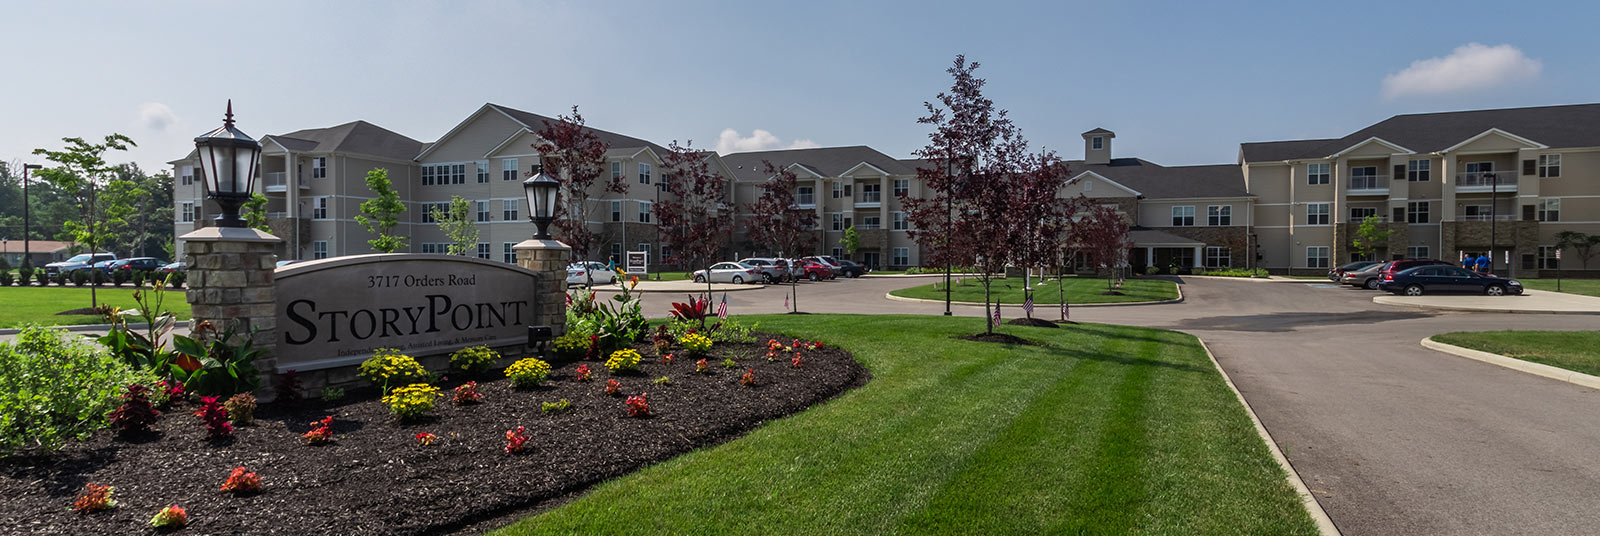 The large StoryPoint senior living community in Grove City, Ohio